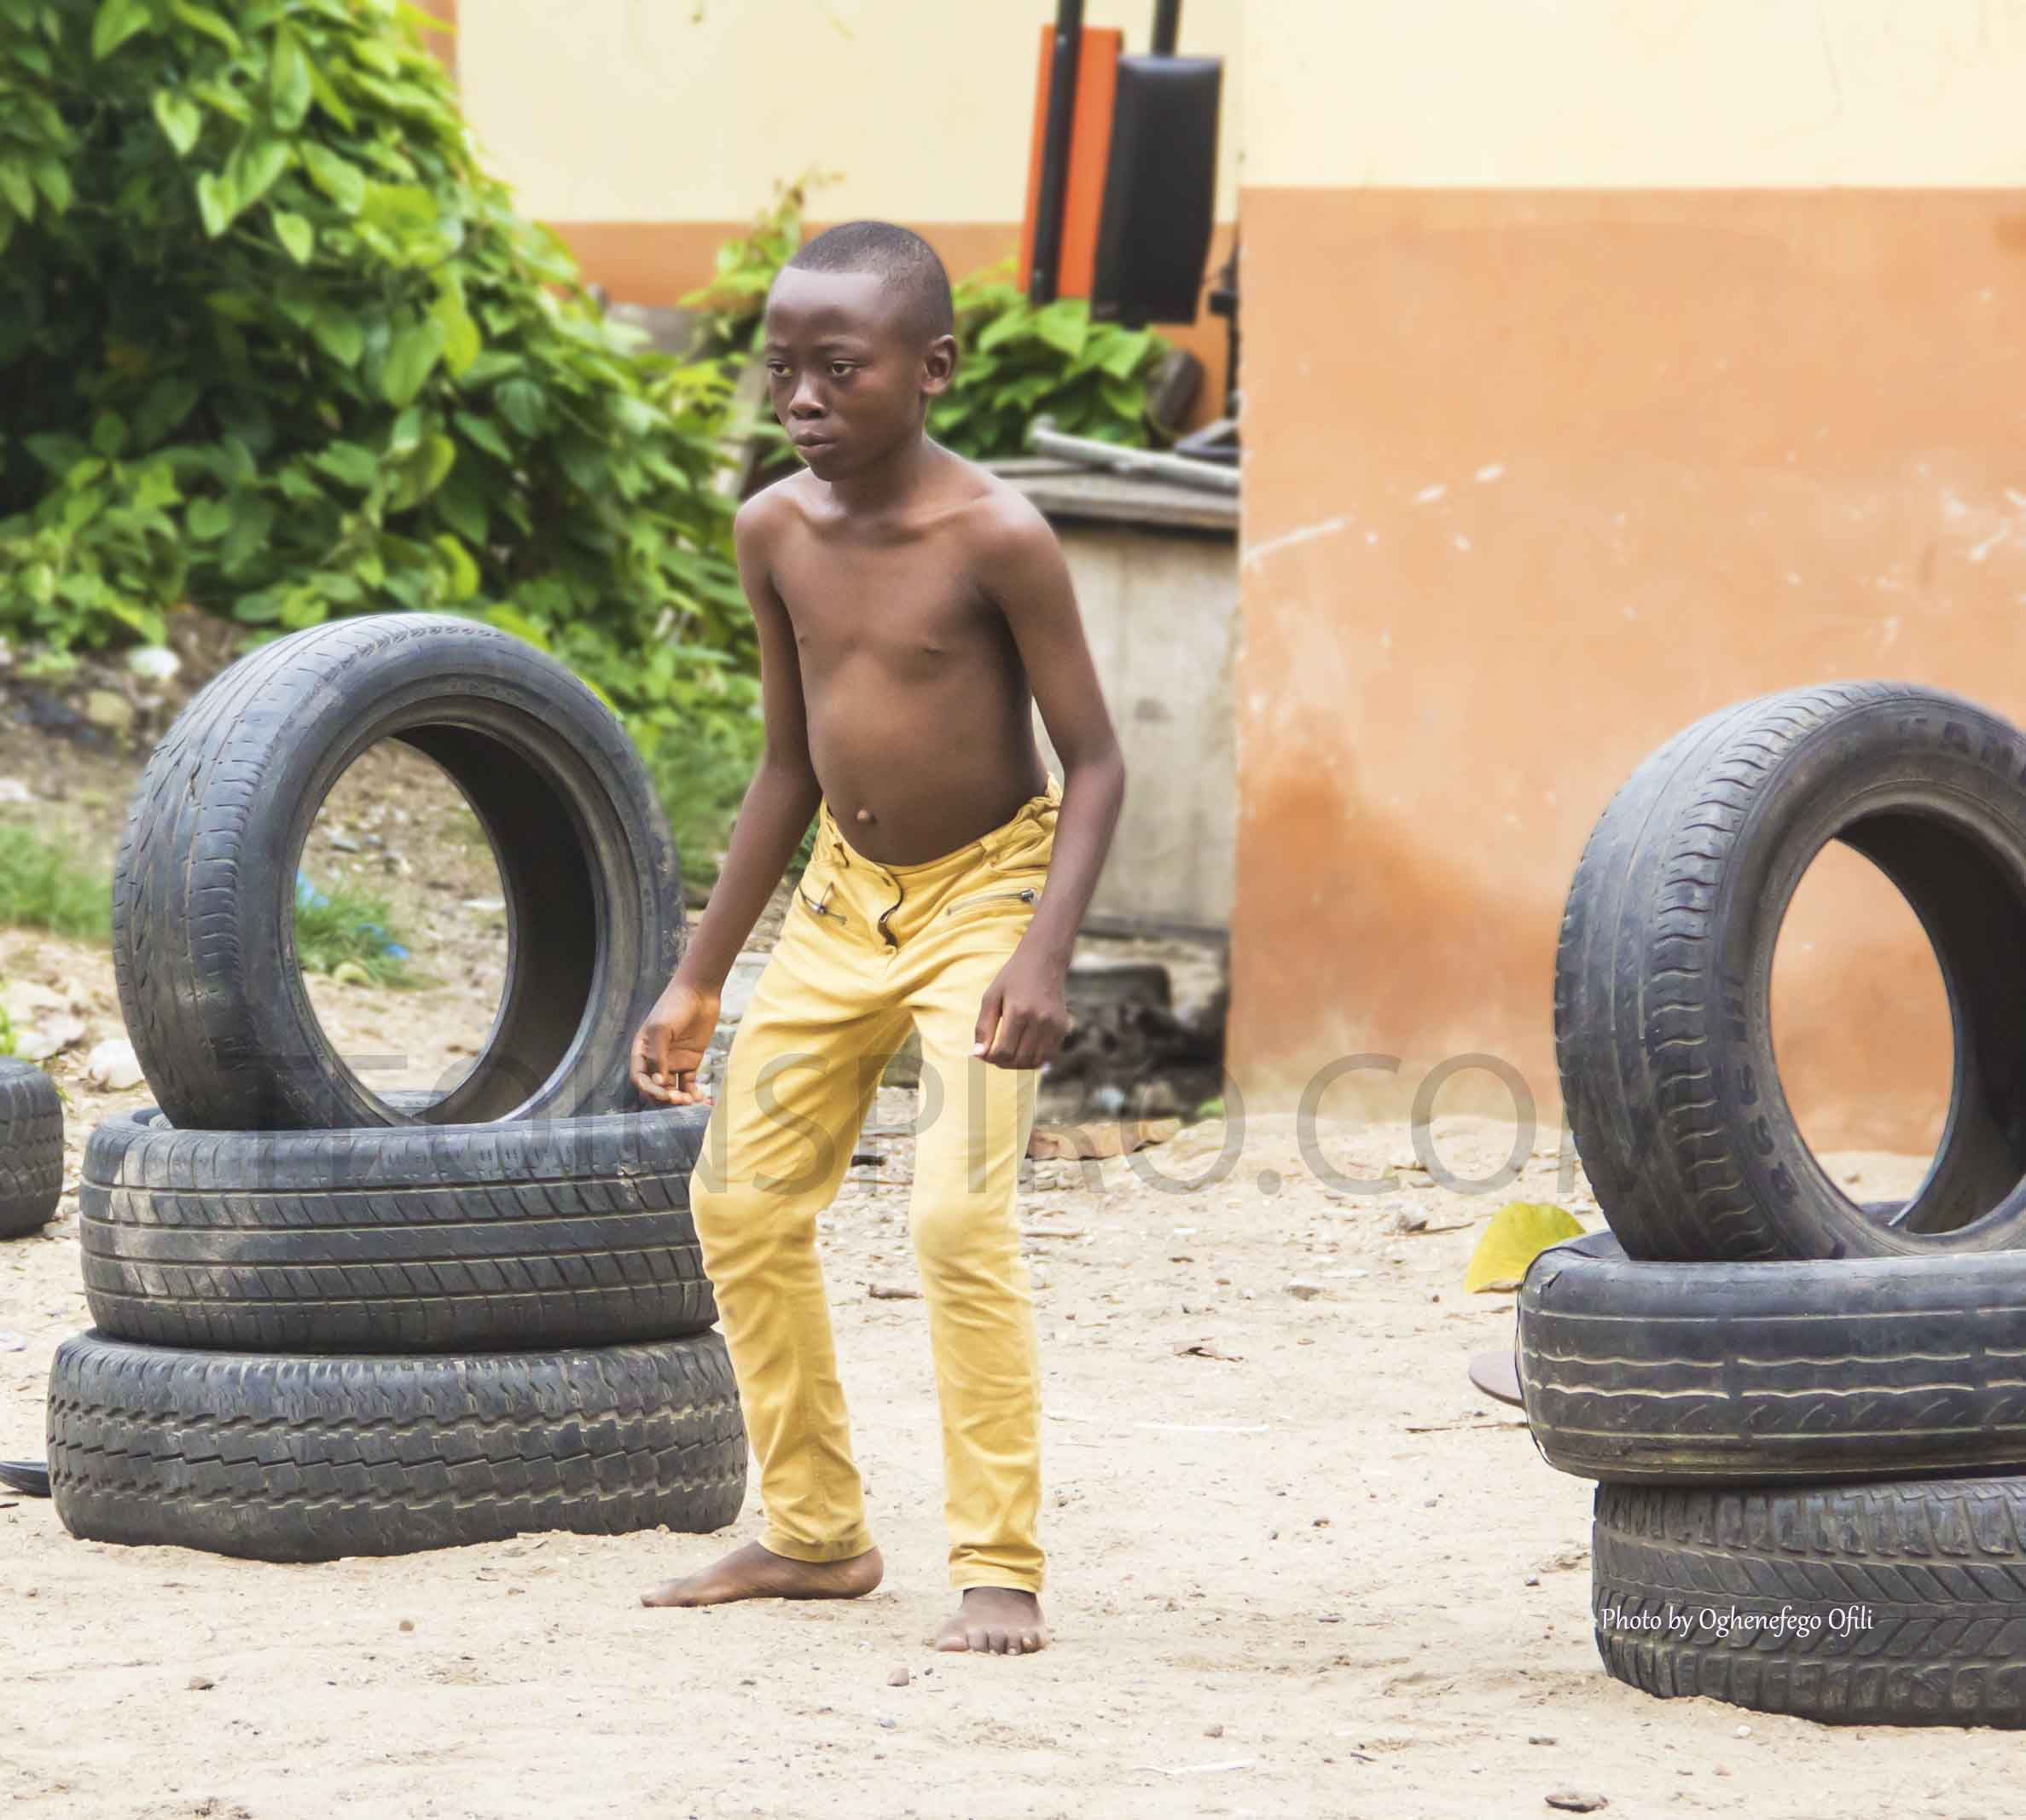 There is hardly any Nigerian lad who did not play football on the streets or during breaktime in school. This sport is like a culture. It is an opportunity to socialize and bond